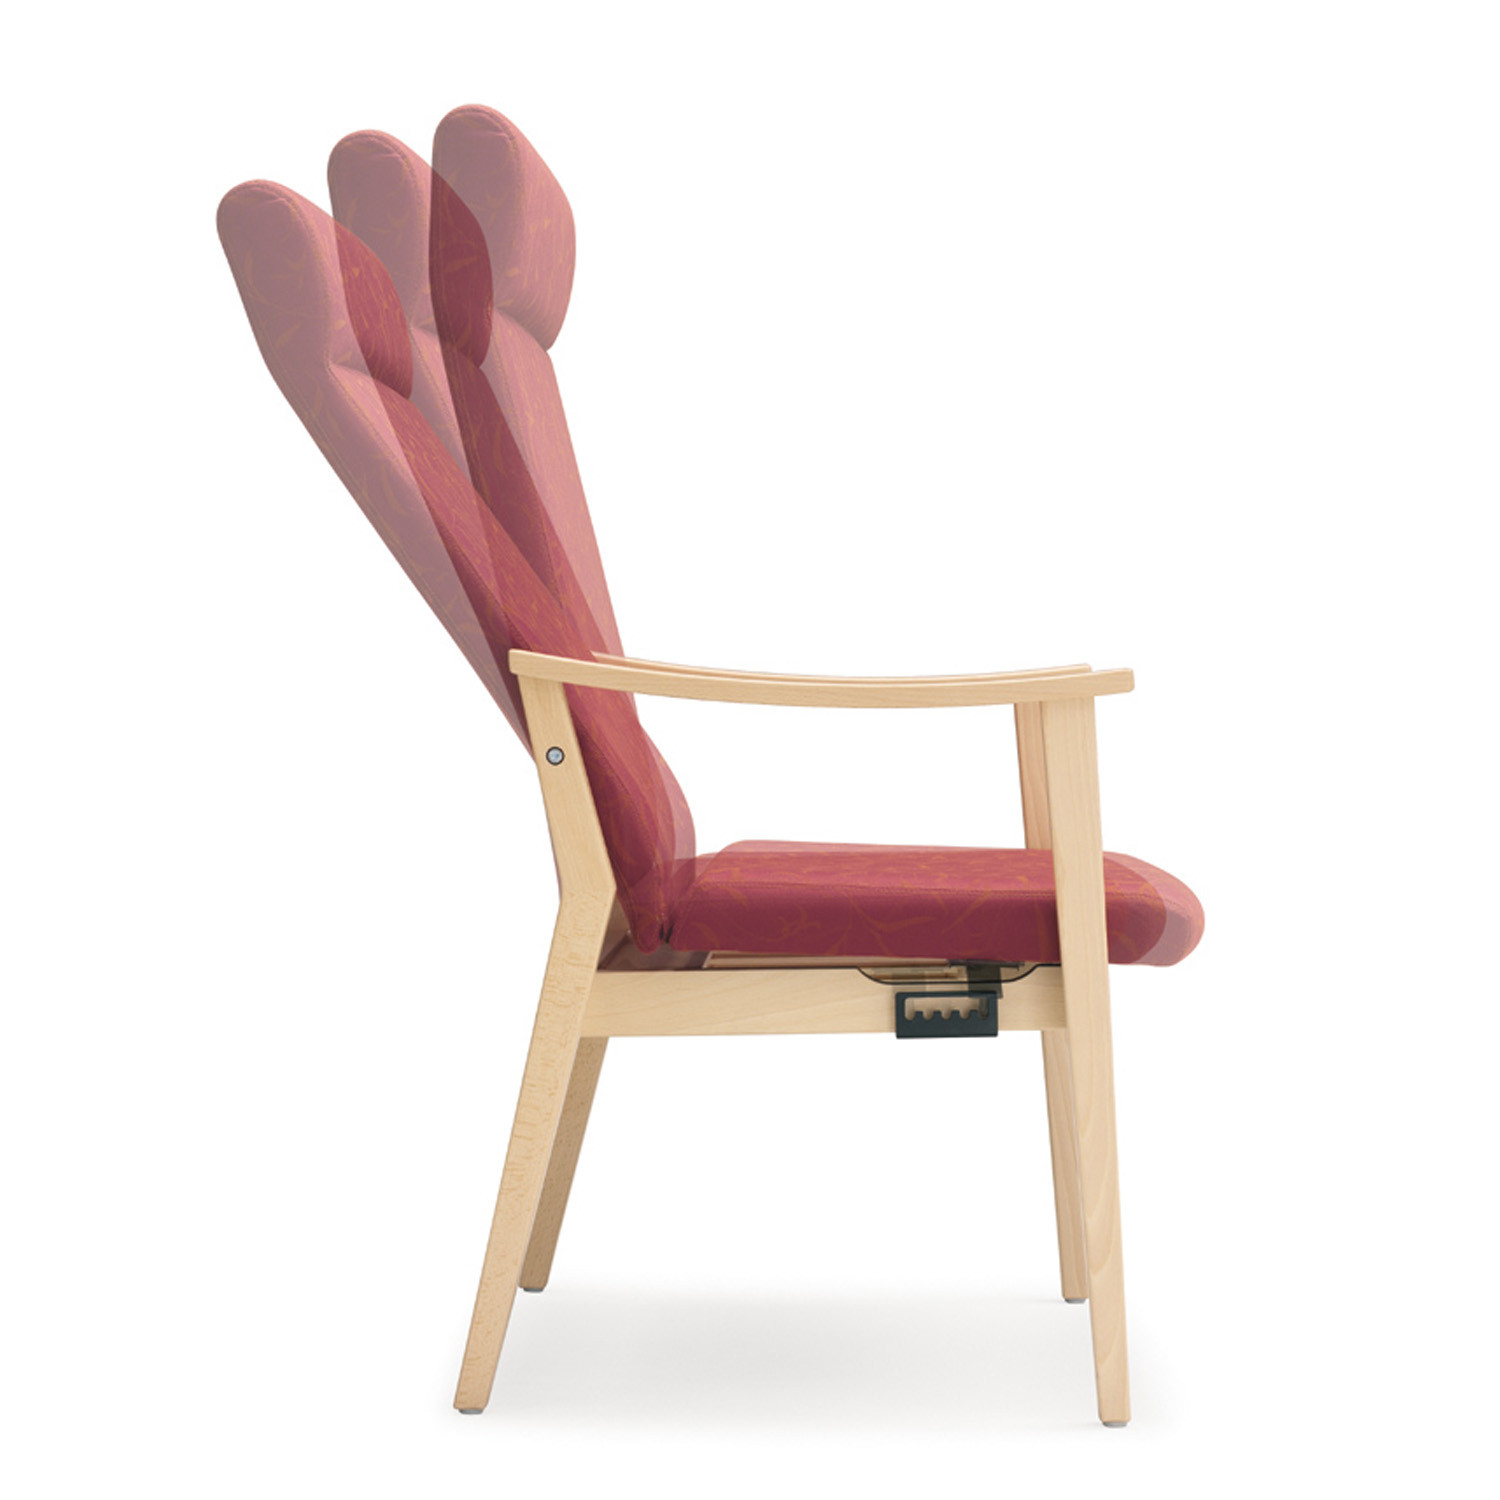 Edward Lounge Chair